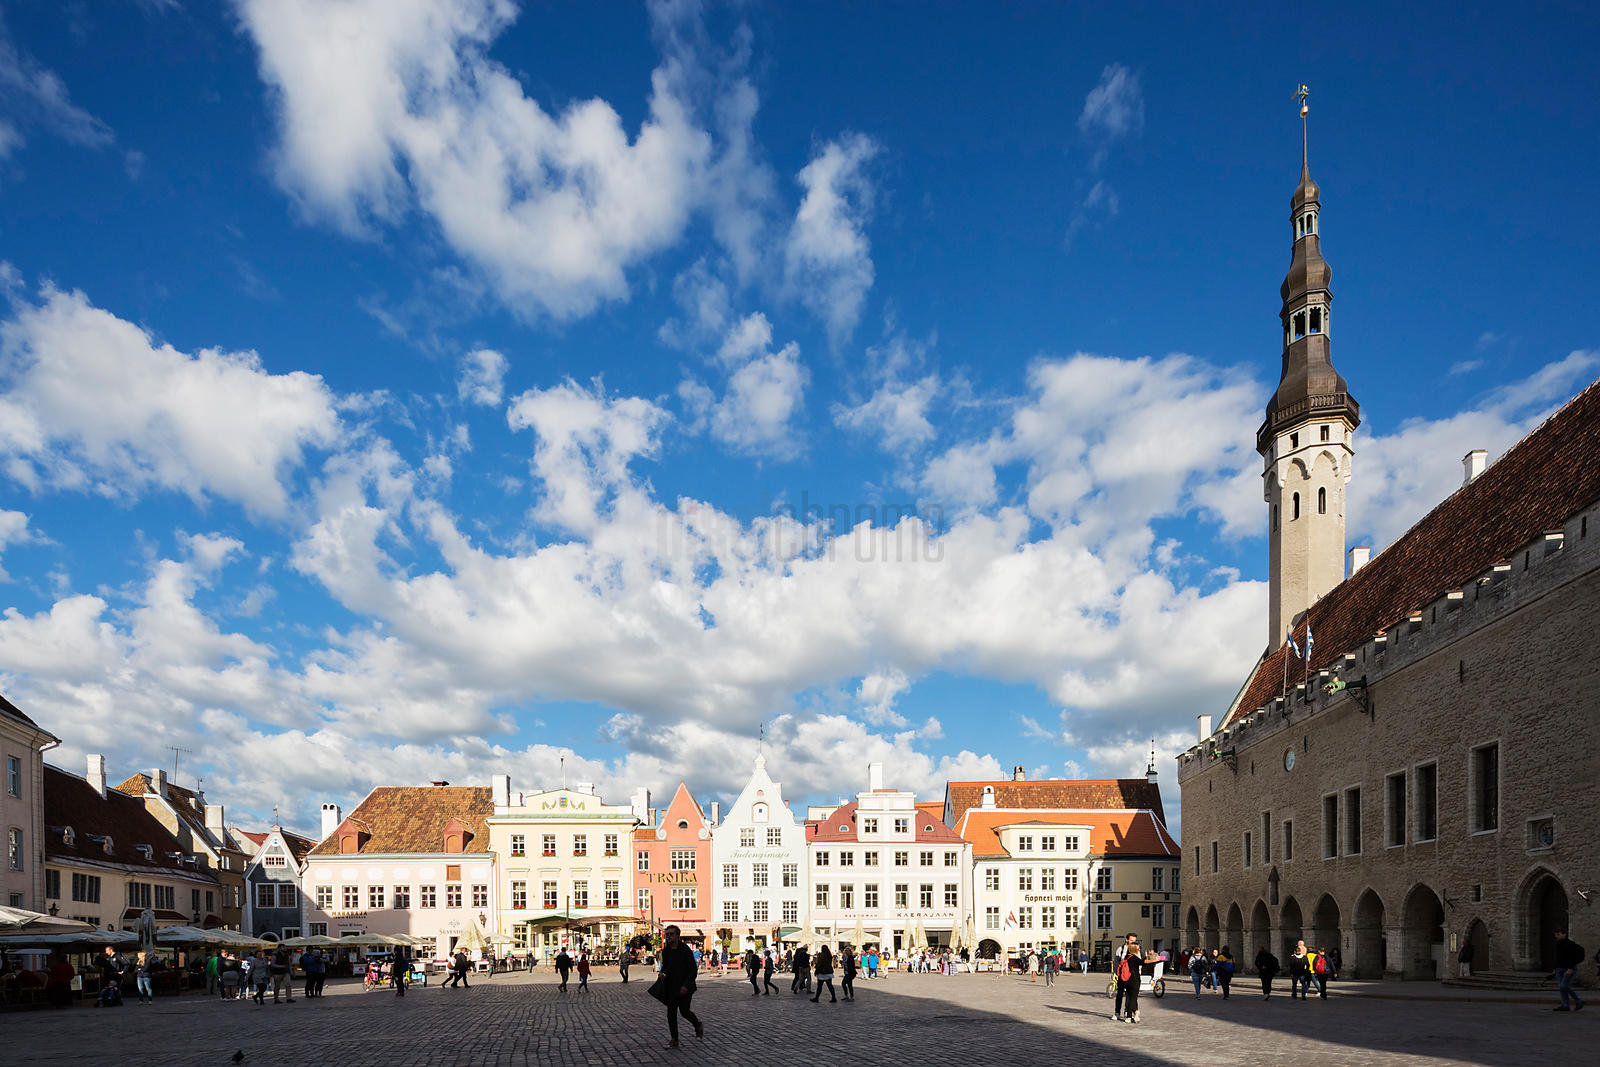 Tallinn City Hall and Raekoja Plats or Market Square